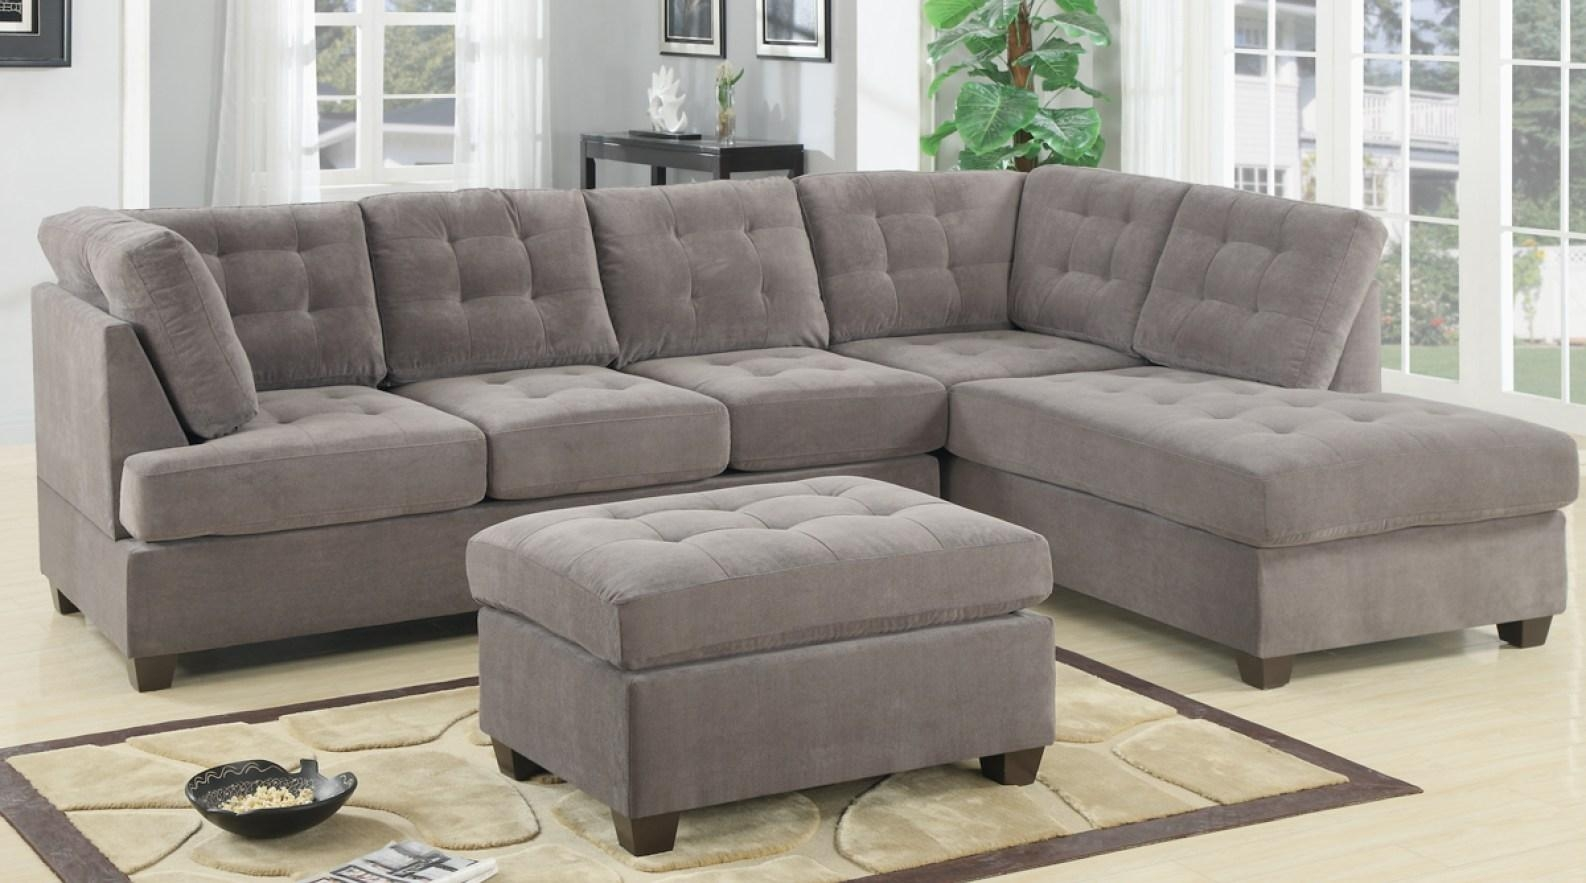 Horrifying Ideas Sofasdesign Epic Sectional Sofa Dimensions Pertaining To Sectional Small Spaces (View 10 of 20)